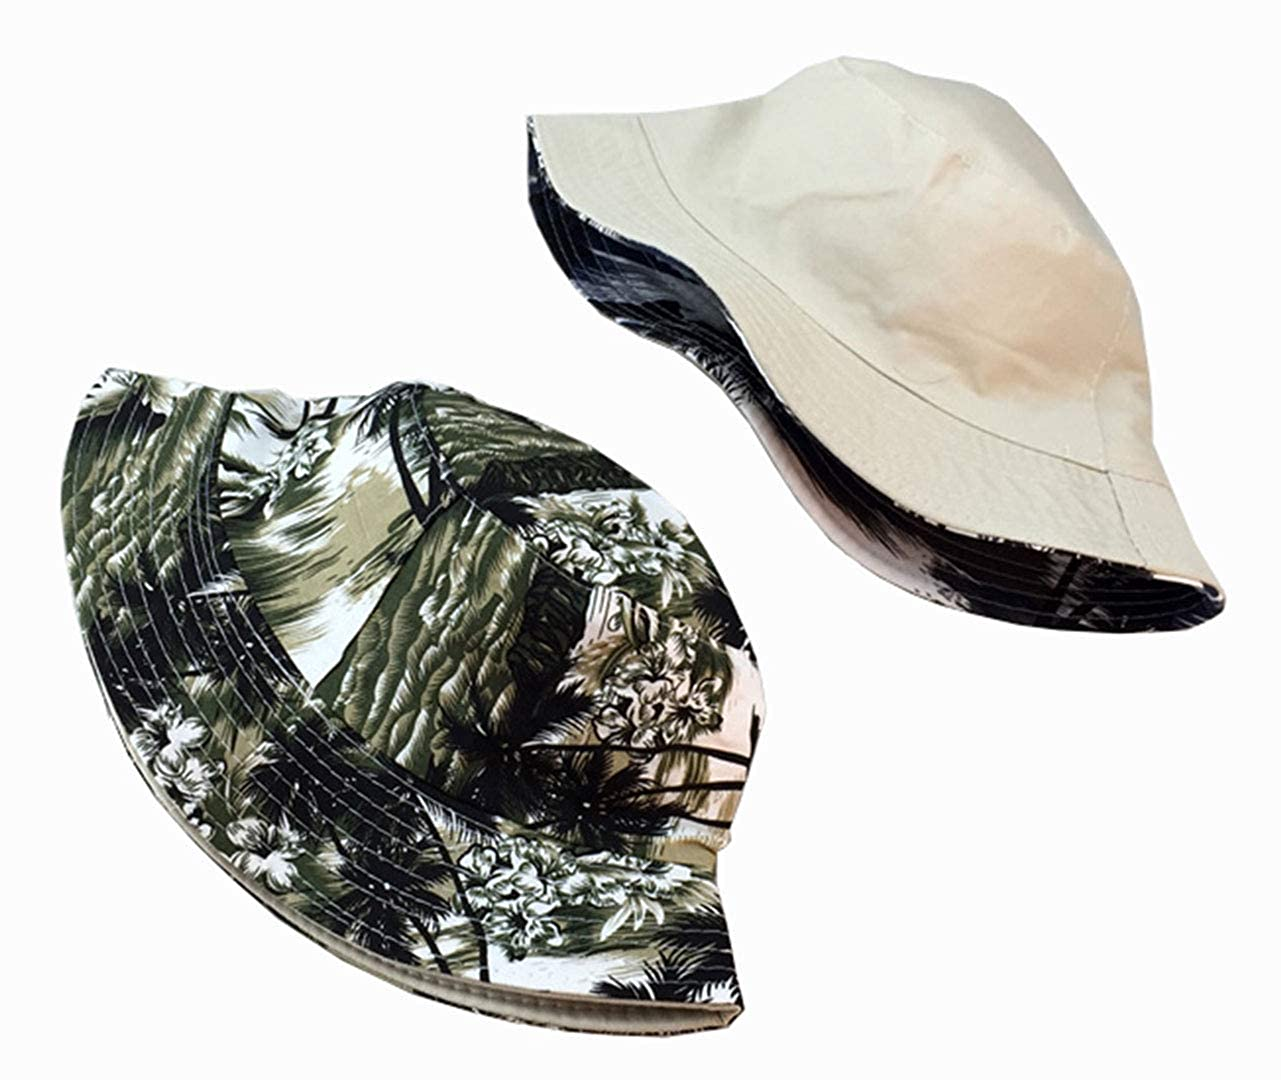 Floral Print Bucket Hat Hawaii Tropical Pattern Fisherman Cap Coconut Tree Reversible Packable Sun Hats